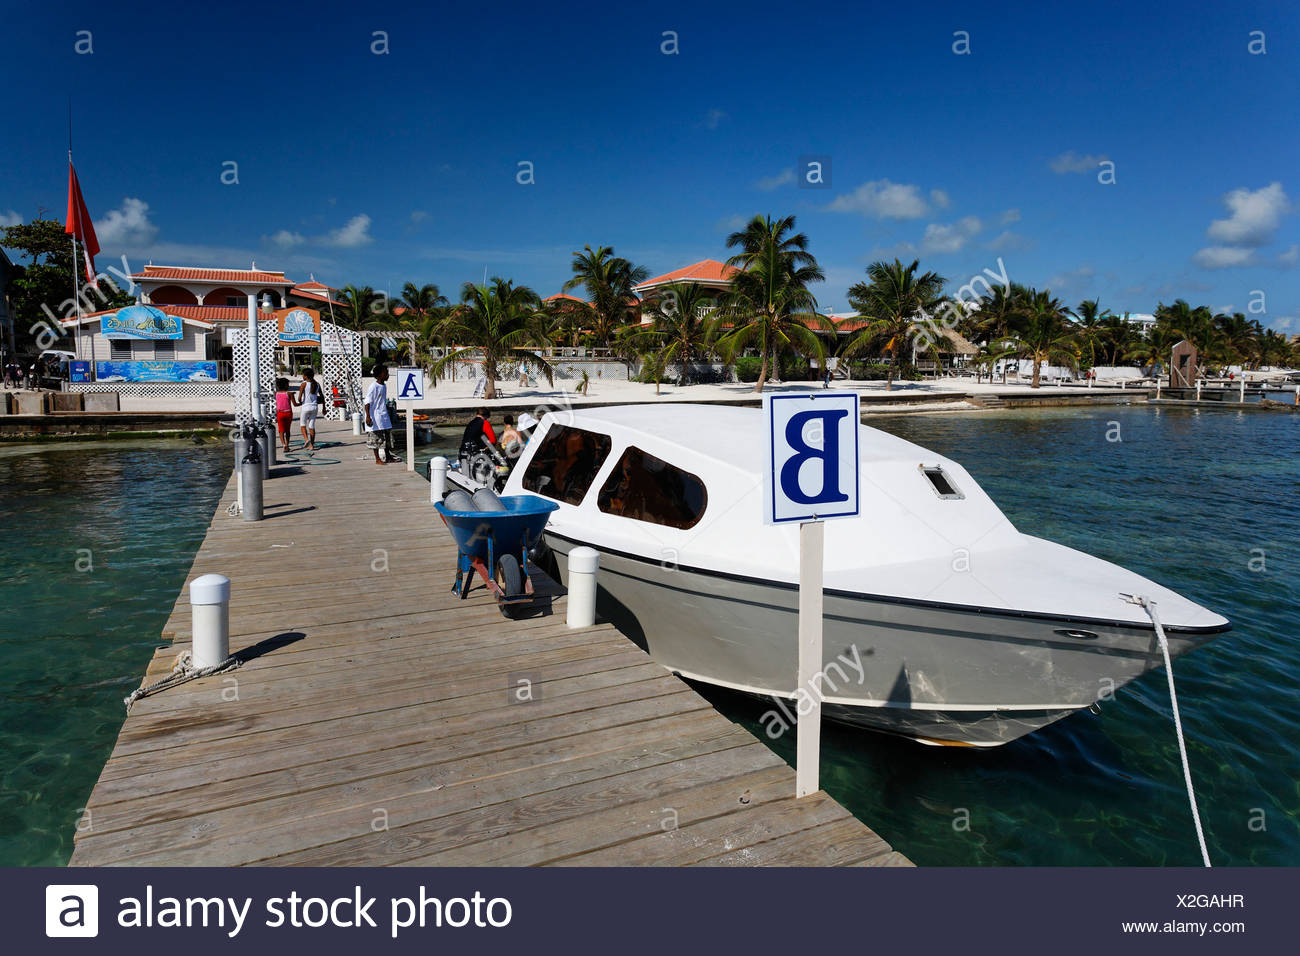 Scuba diving boat tied to the pier of the Sun Breeze Hotel, San Pedro, Ambergris Cay Island, Belize, Central America, Caribbean - Stock Image